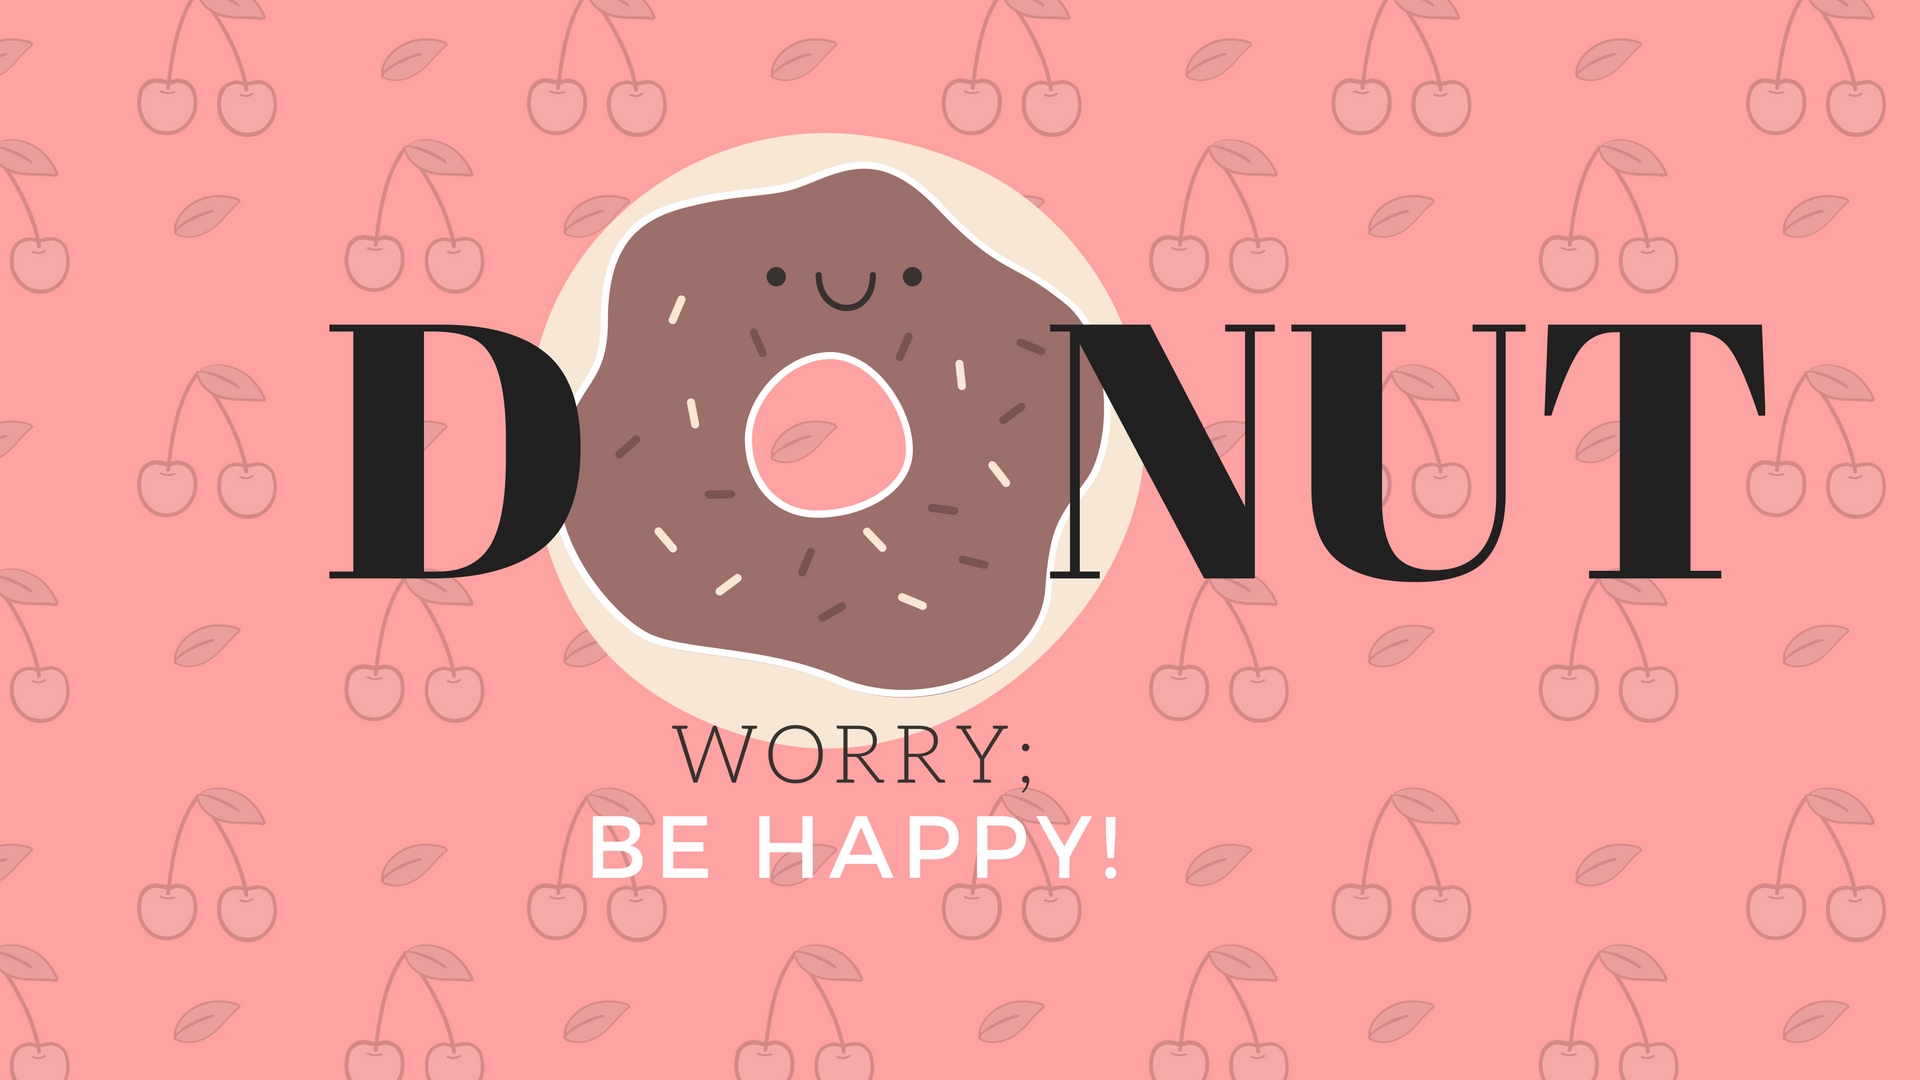 Quote Wallpaper Computer Donut Worry Be Happy Michelle Amp Serena S Wallpapers